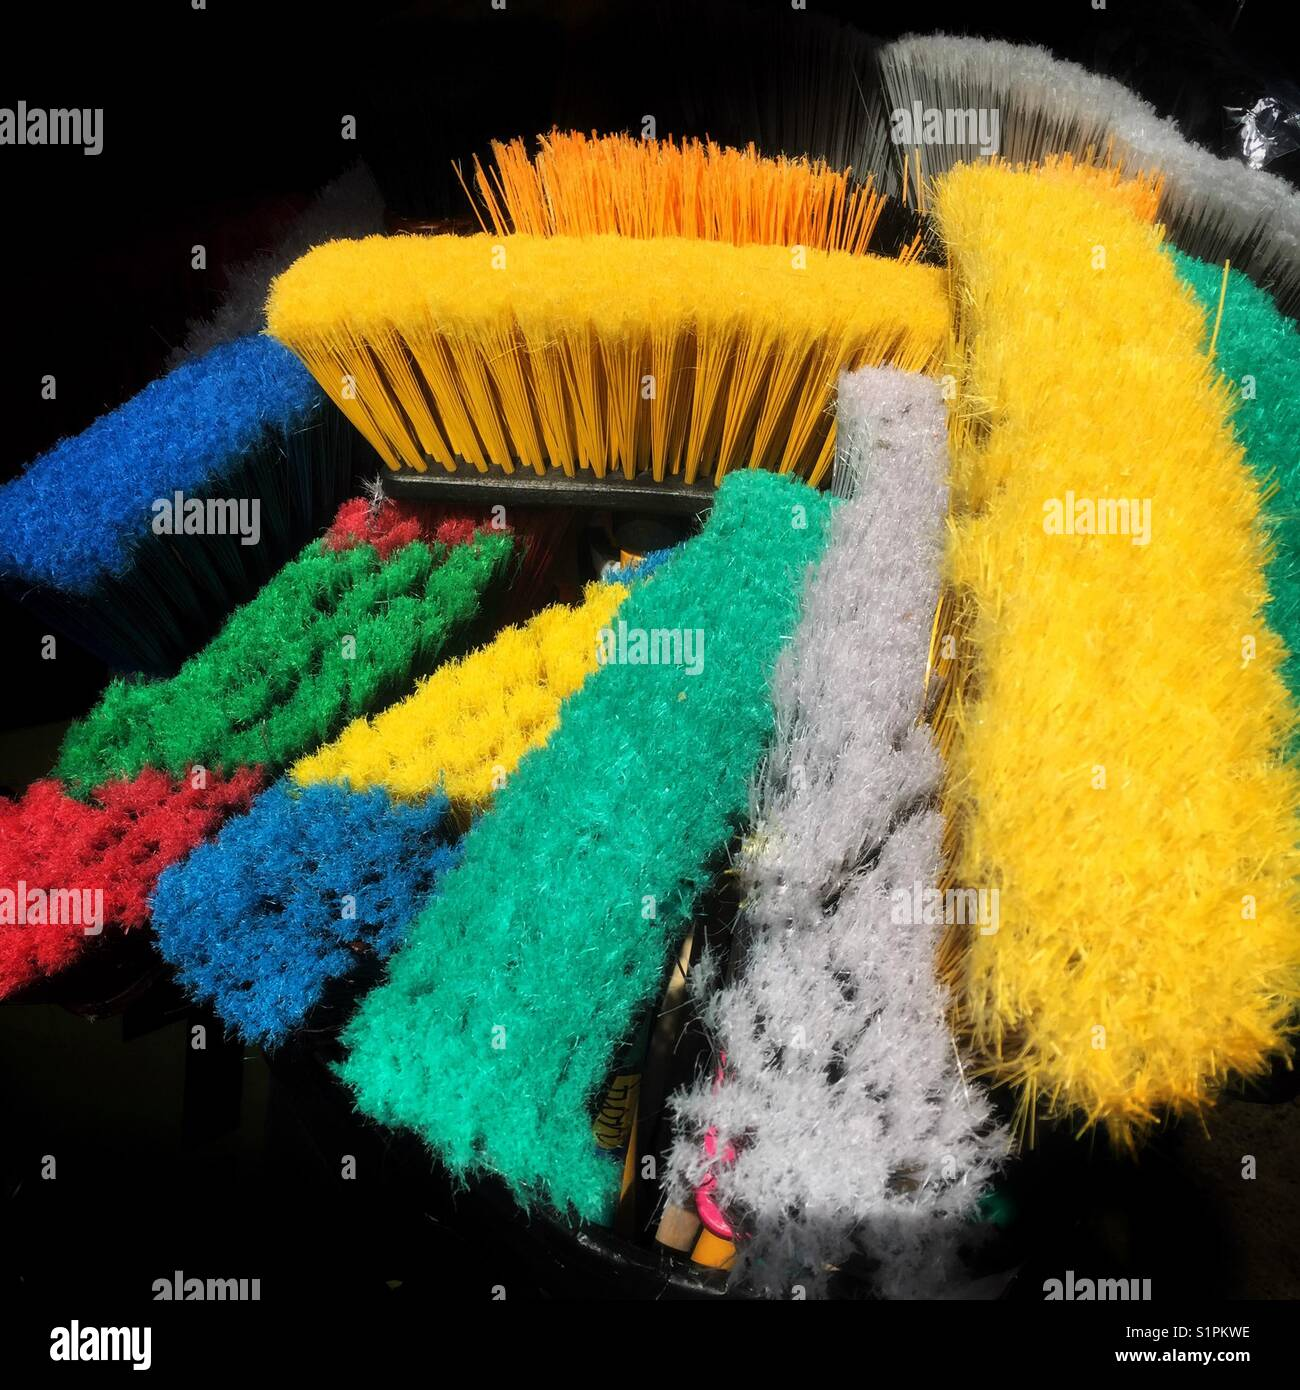 Colorful mop and broom heads - Stock Image